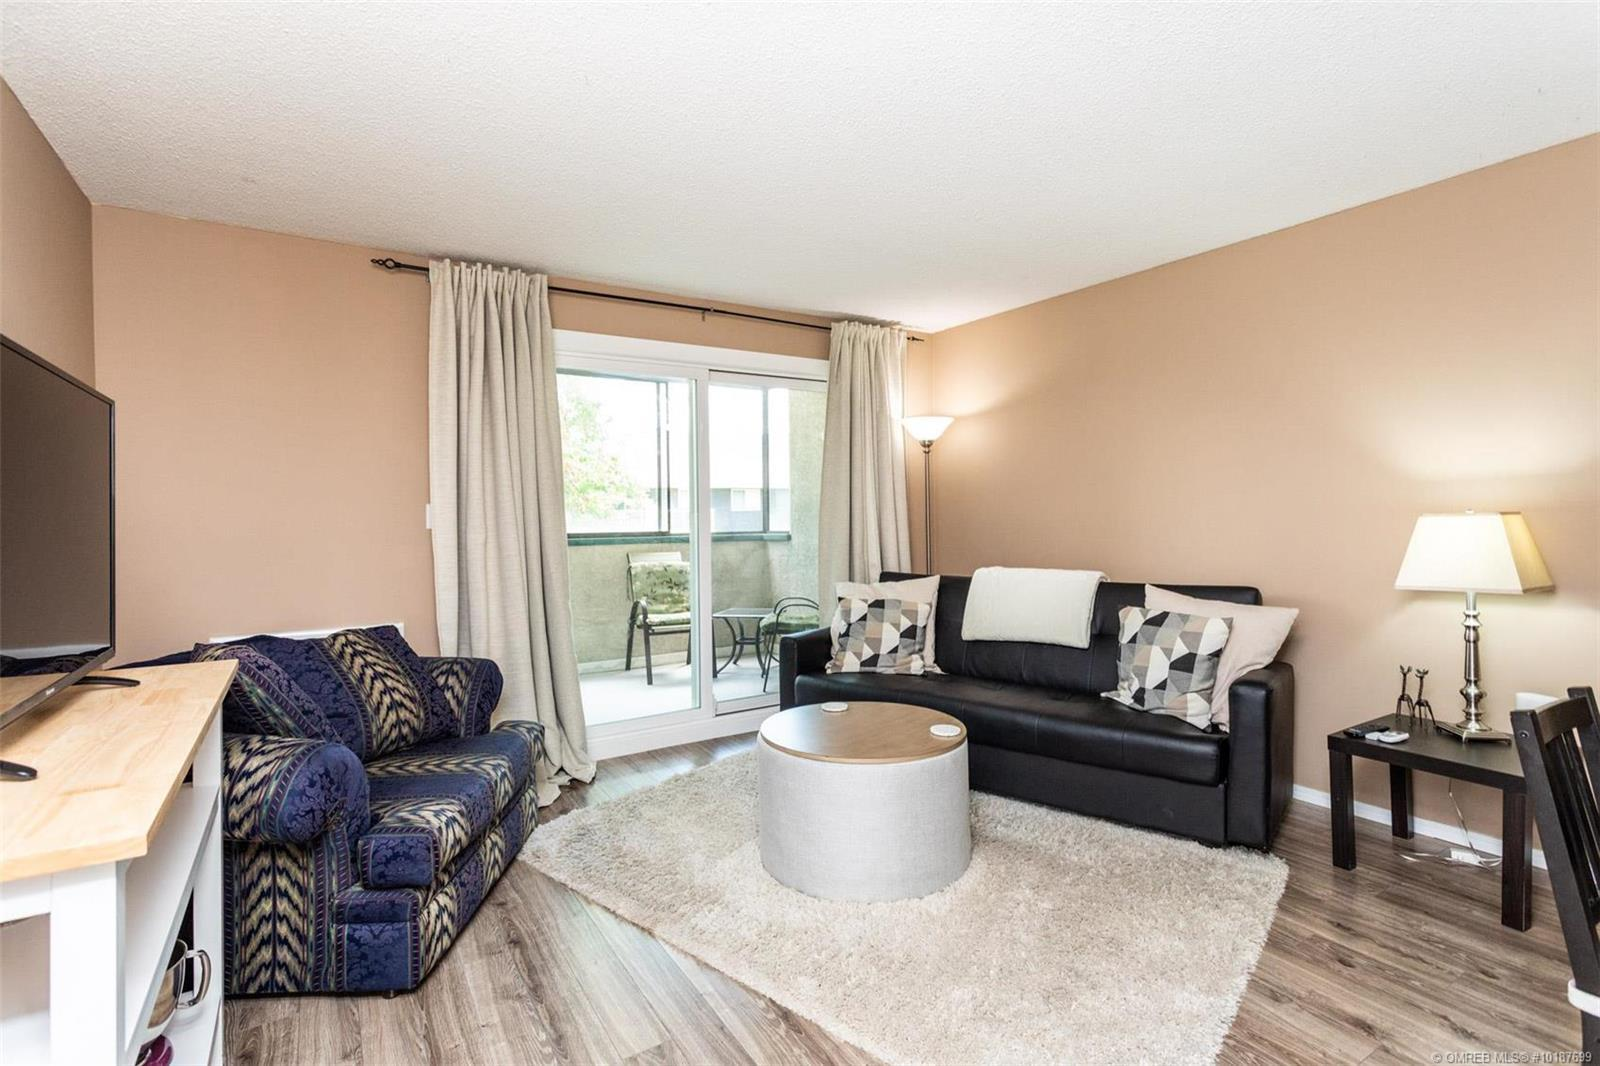 Removed: 233 - 495 All Star Court, Kelowna, BC - Removed on 2019-10-05 06:24:14